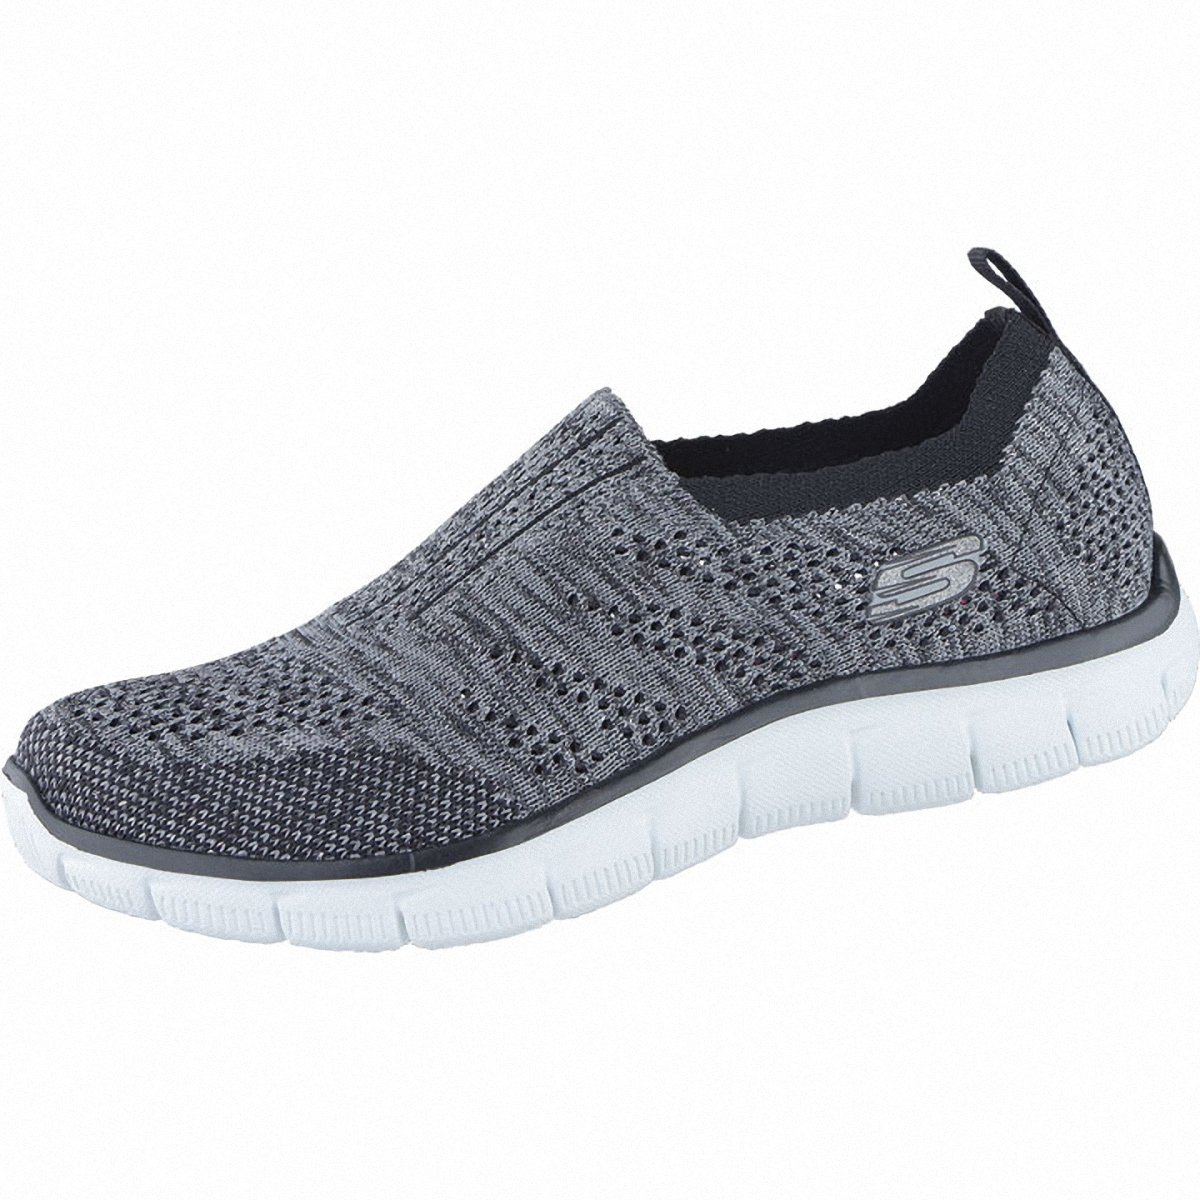 Skechers Round Up Coole Damen Textil Sneakers Black Silver